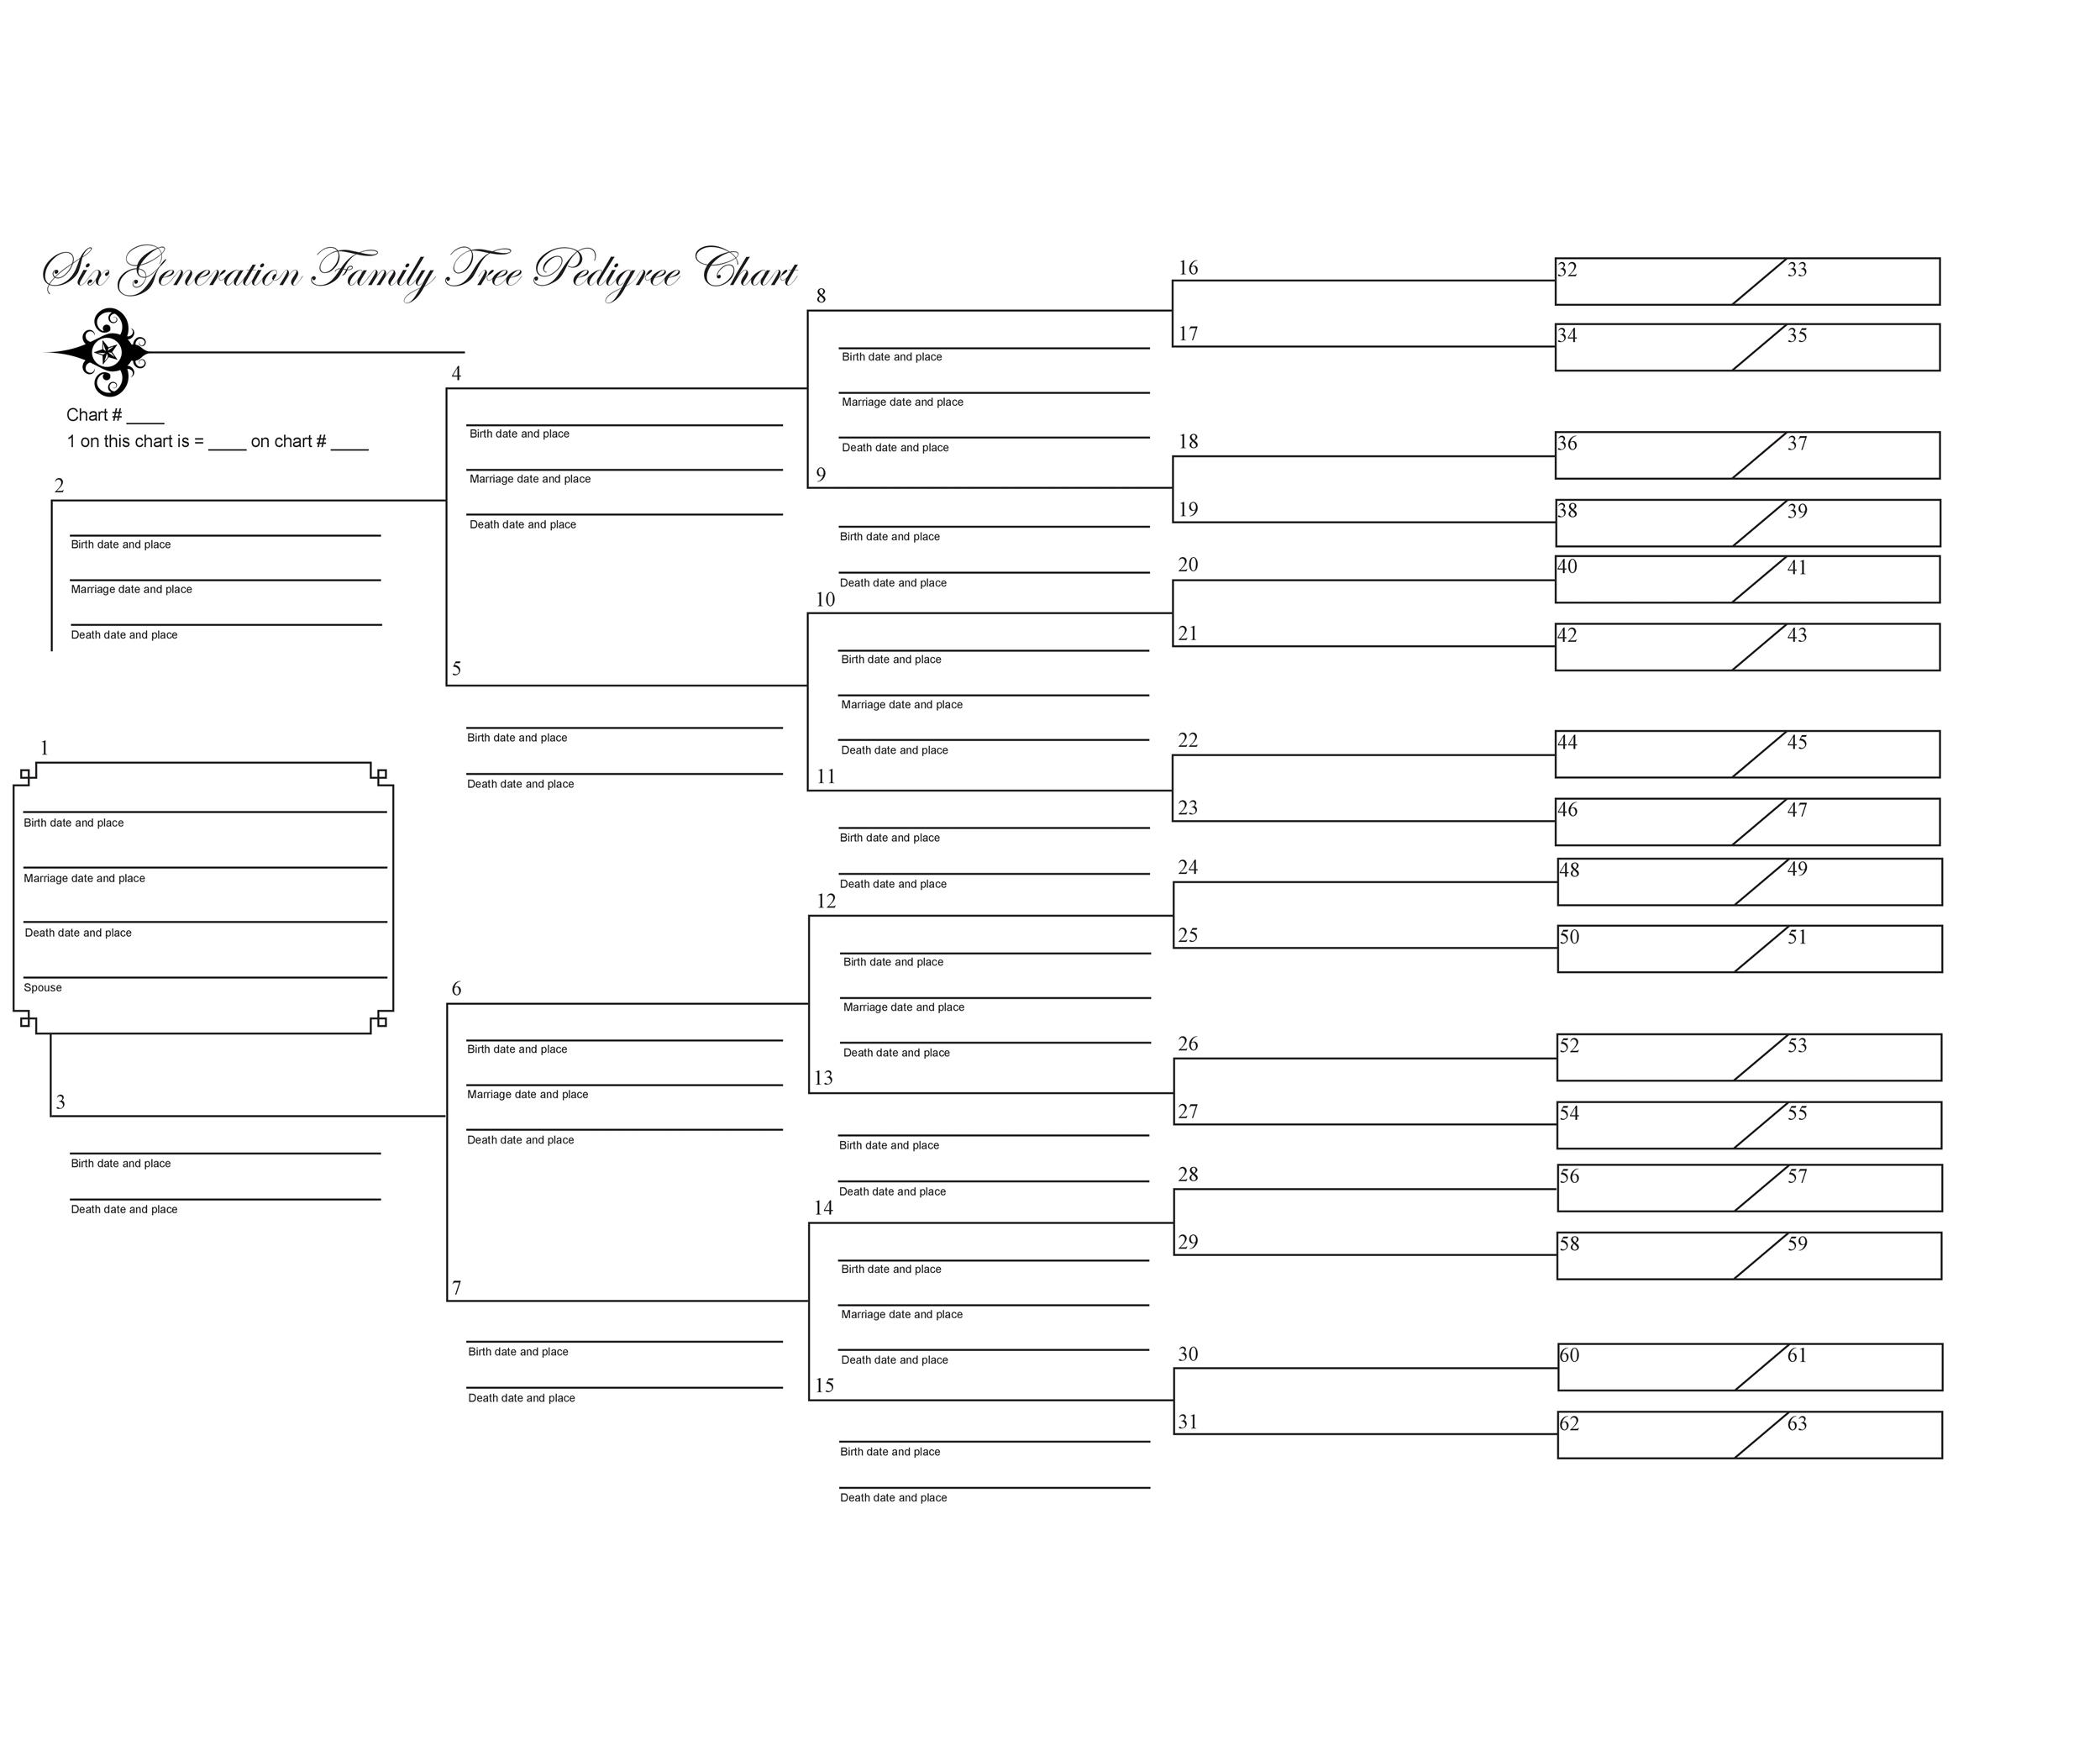 40 Free Family Tree Templates Word Excel PDF Template Lab – Family Tree Template in Word